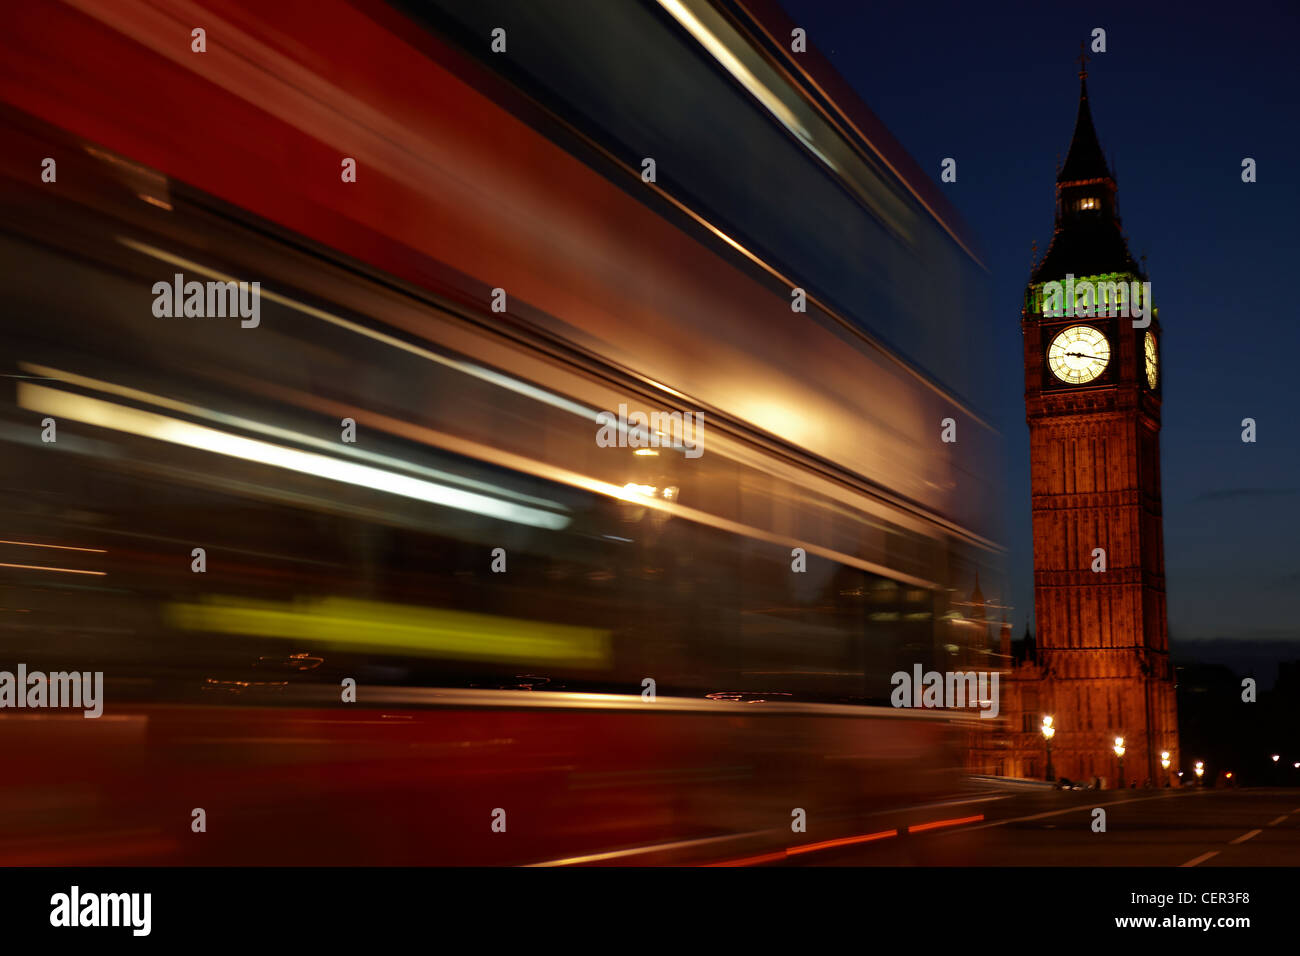 A red double decker bus passing Big Ben at night in Westminster. - Stock Image